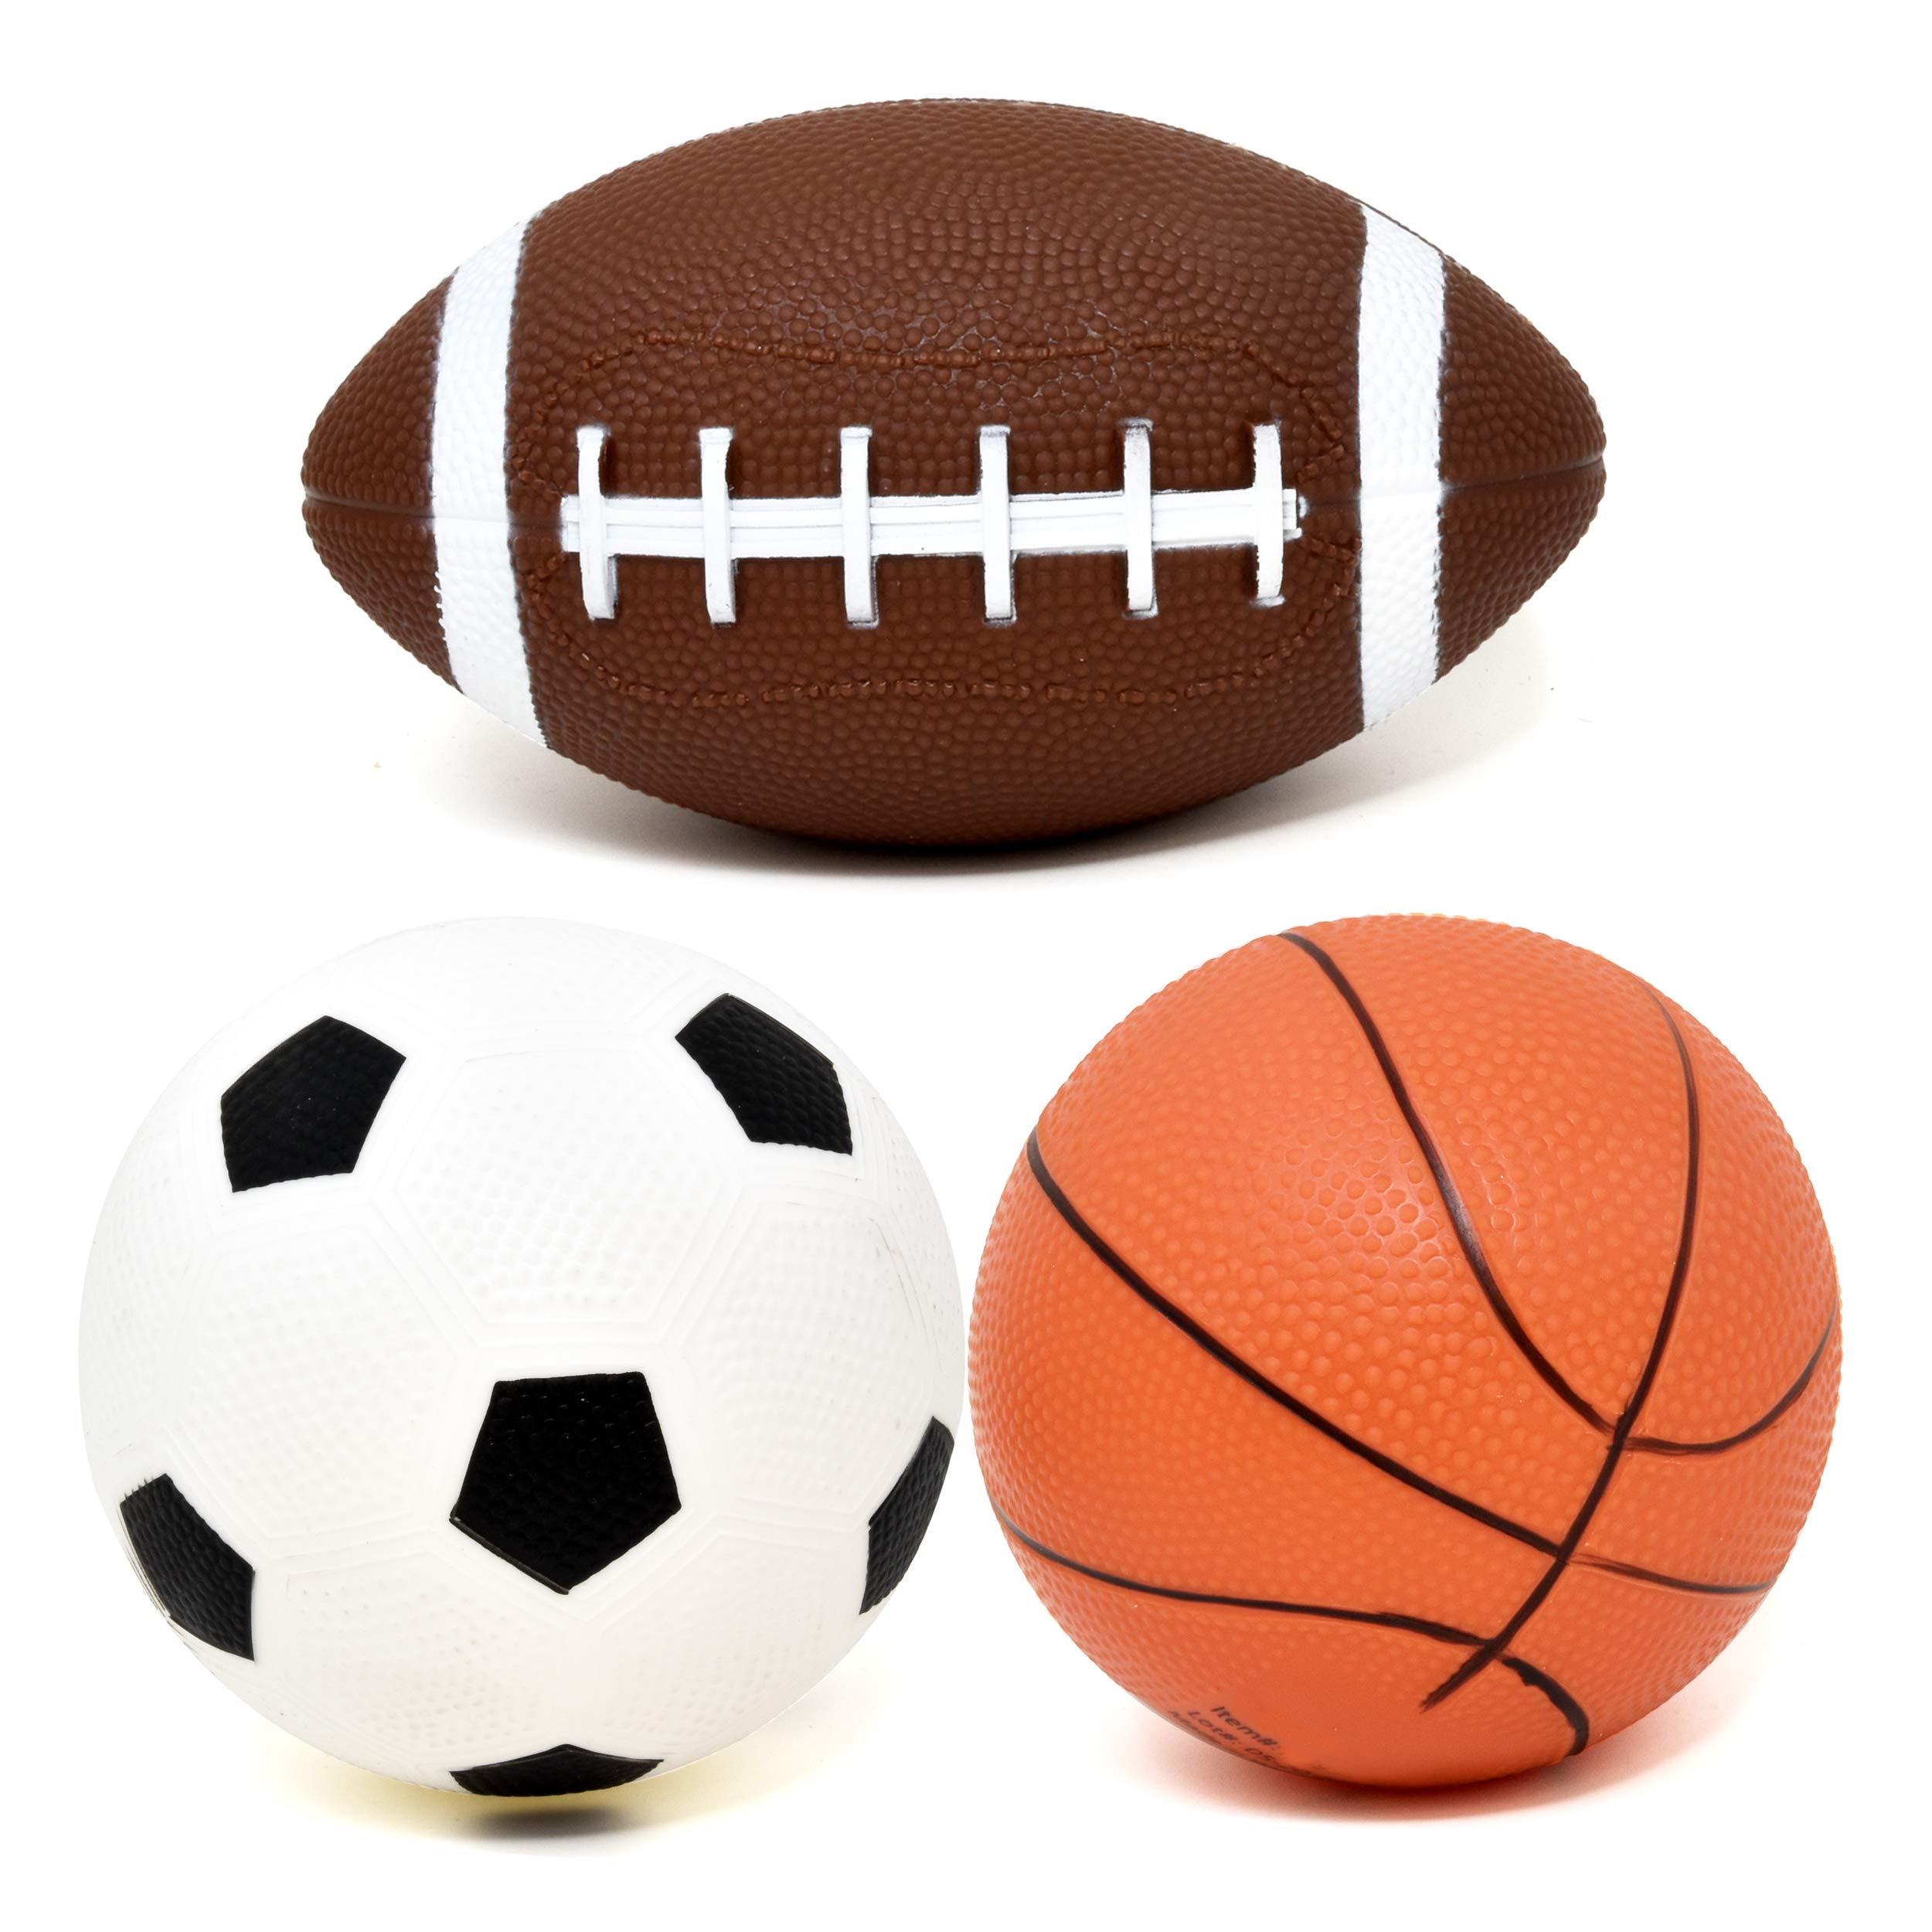 Number 1 in Gadgets Set of 3 Sports Balls for Kids, Mini Sport Pack Includes Football, Soccer & Basketball for Soft Indoor & Outdoor Play Great for Toddlers & Little Hands by Number 1 in Gadgets